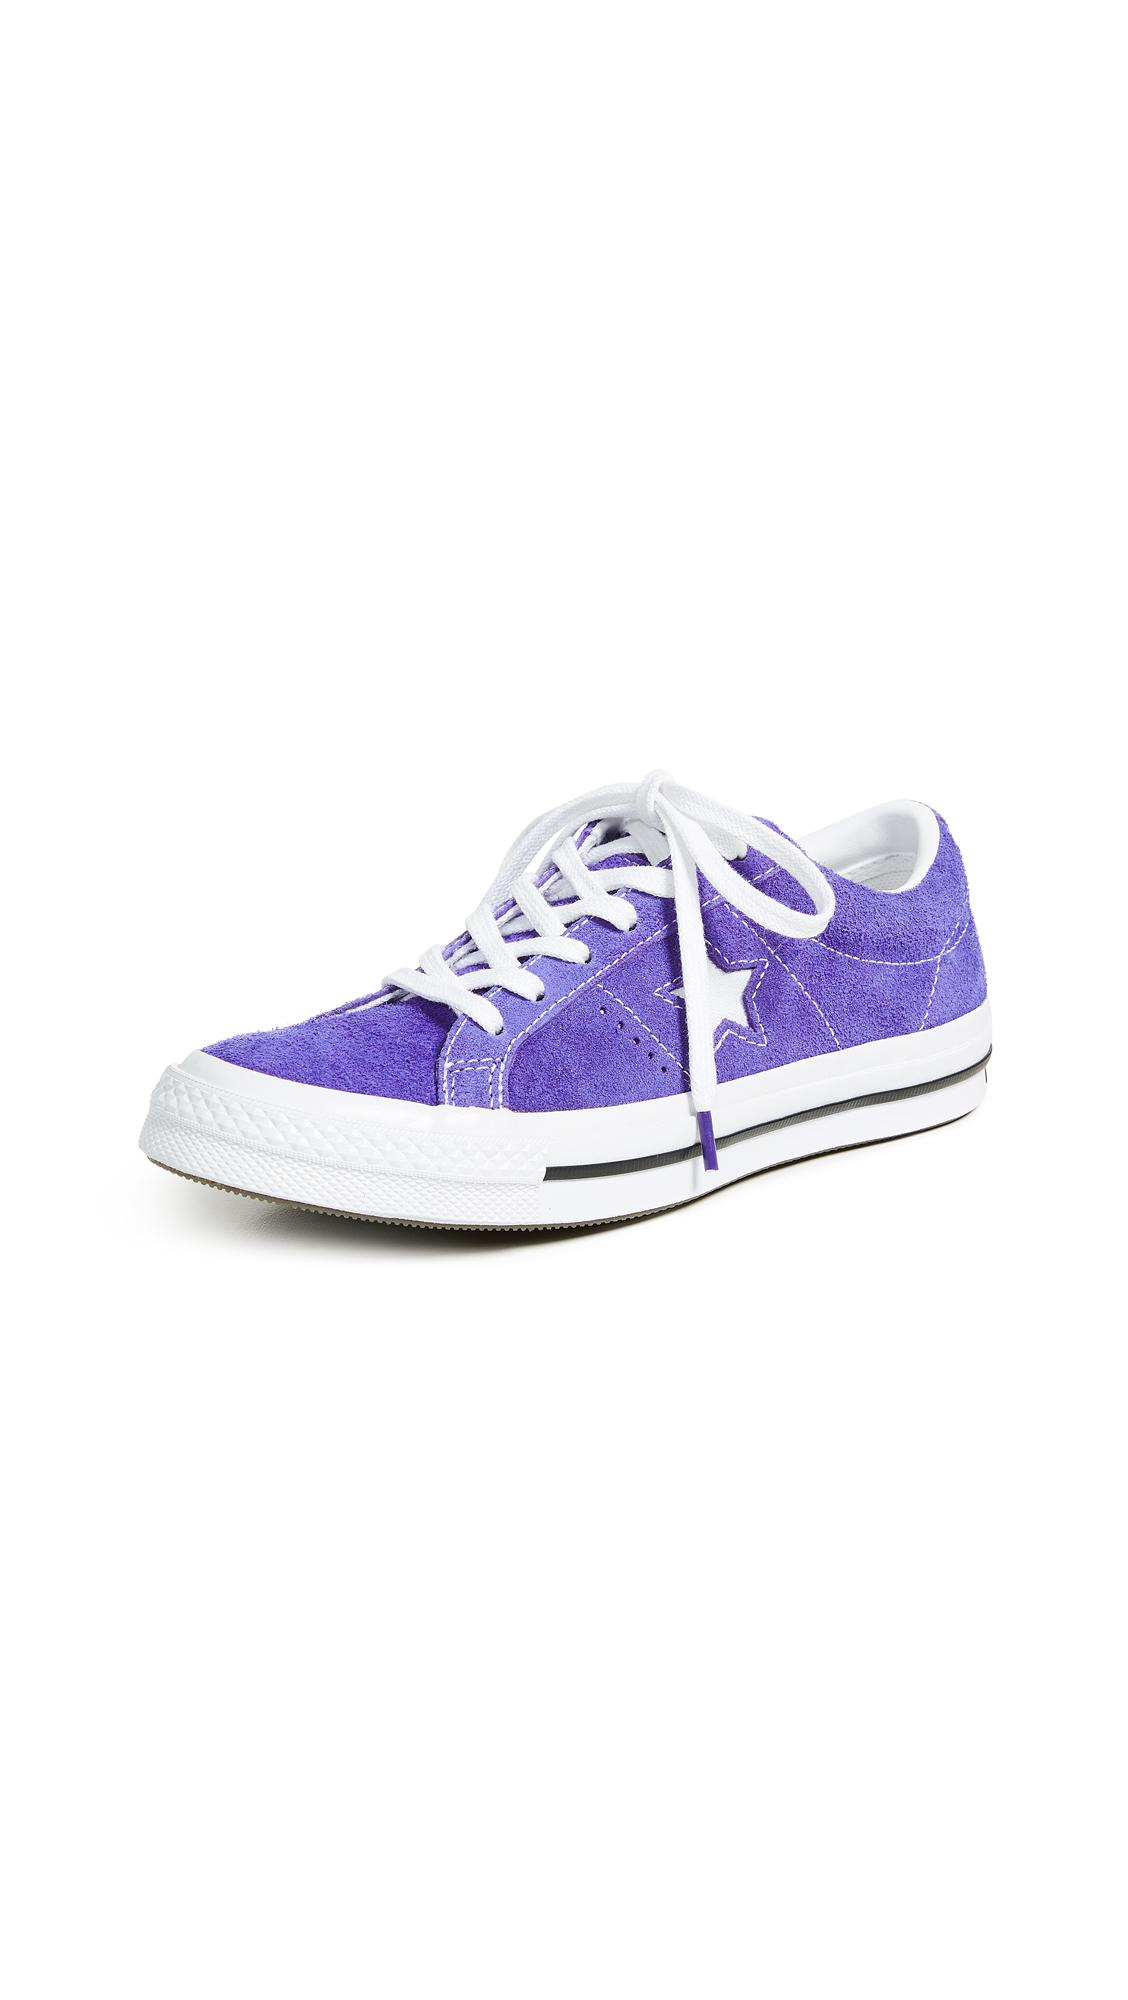 09ed46233642df Converse One Star Ox Sneakers In Court Purple